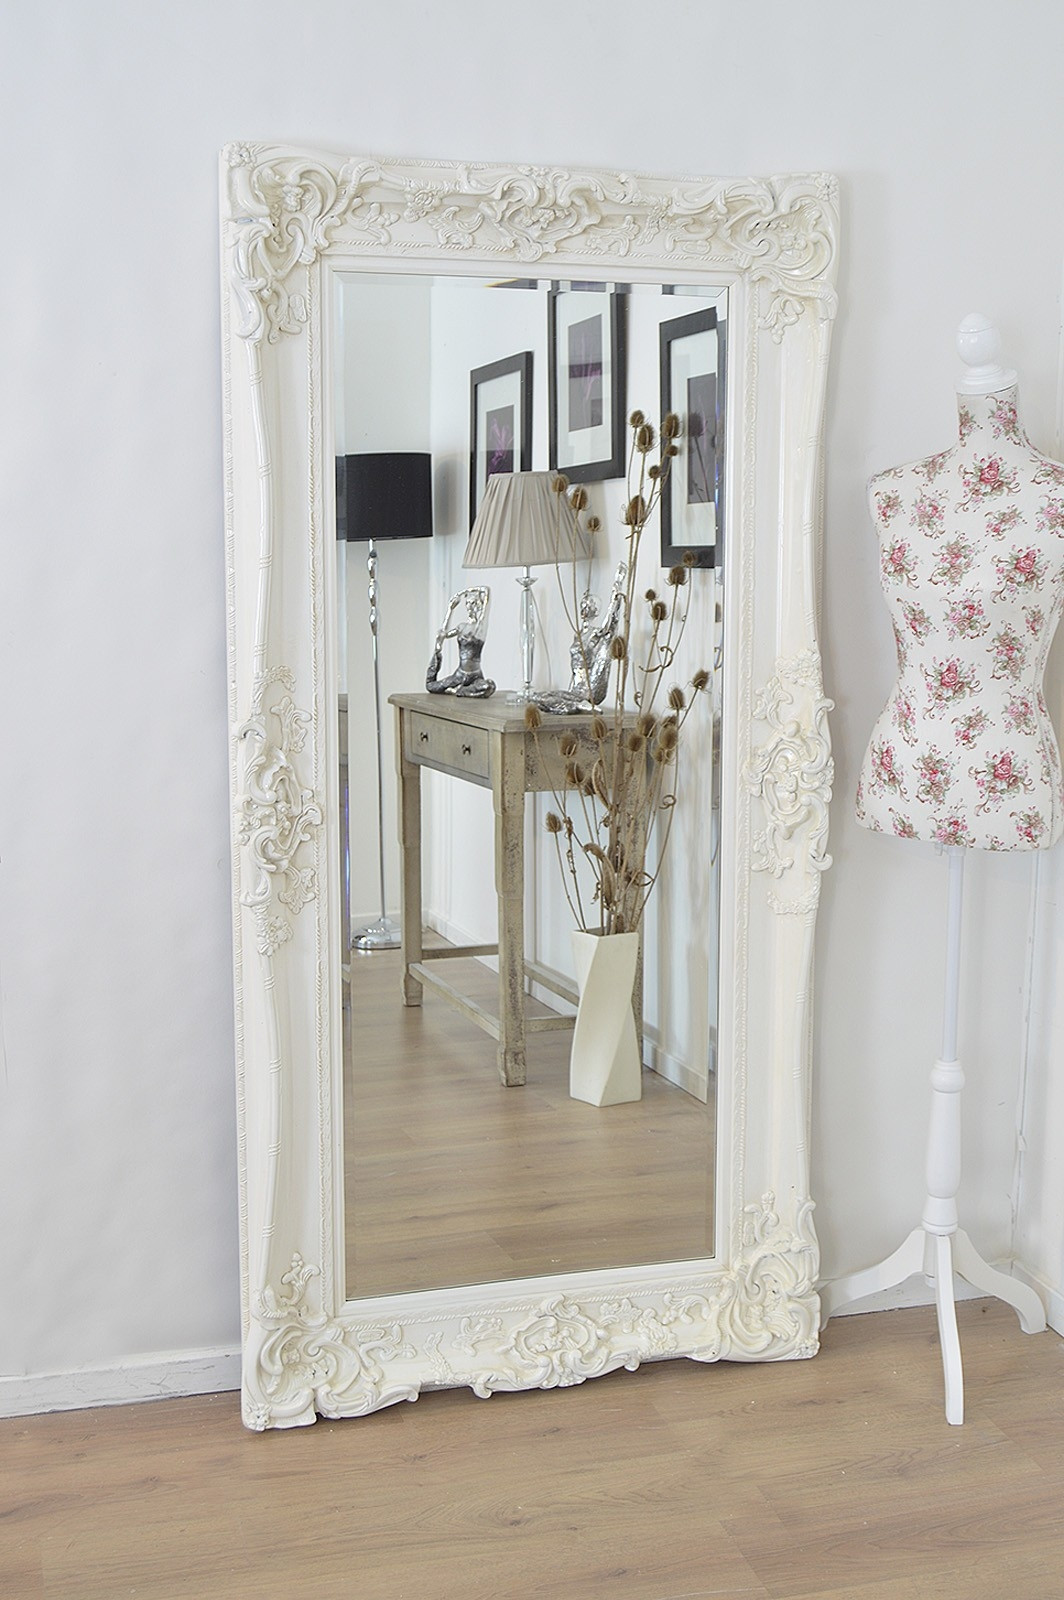 Best ideas about Shabby Chic Mirror . Save or Pin White Shabby Chic Mirror Now.